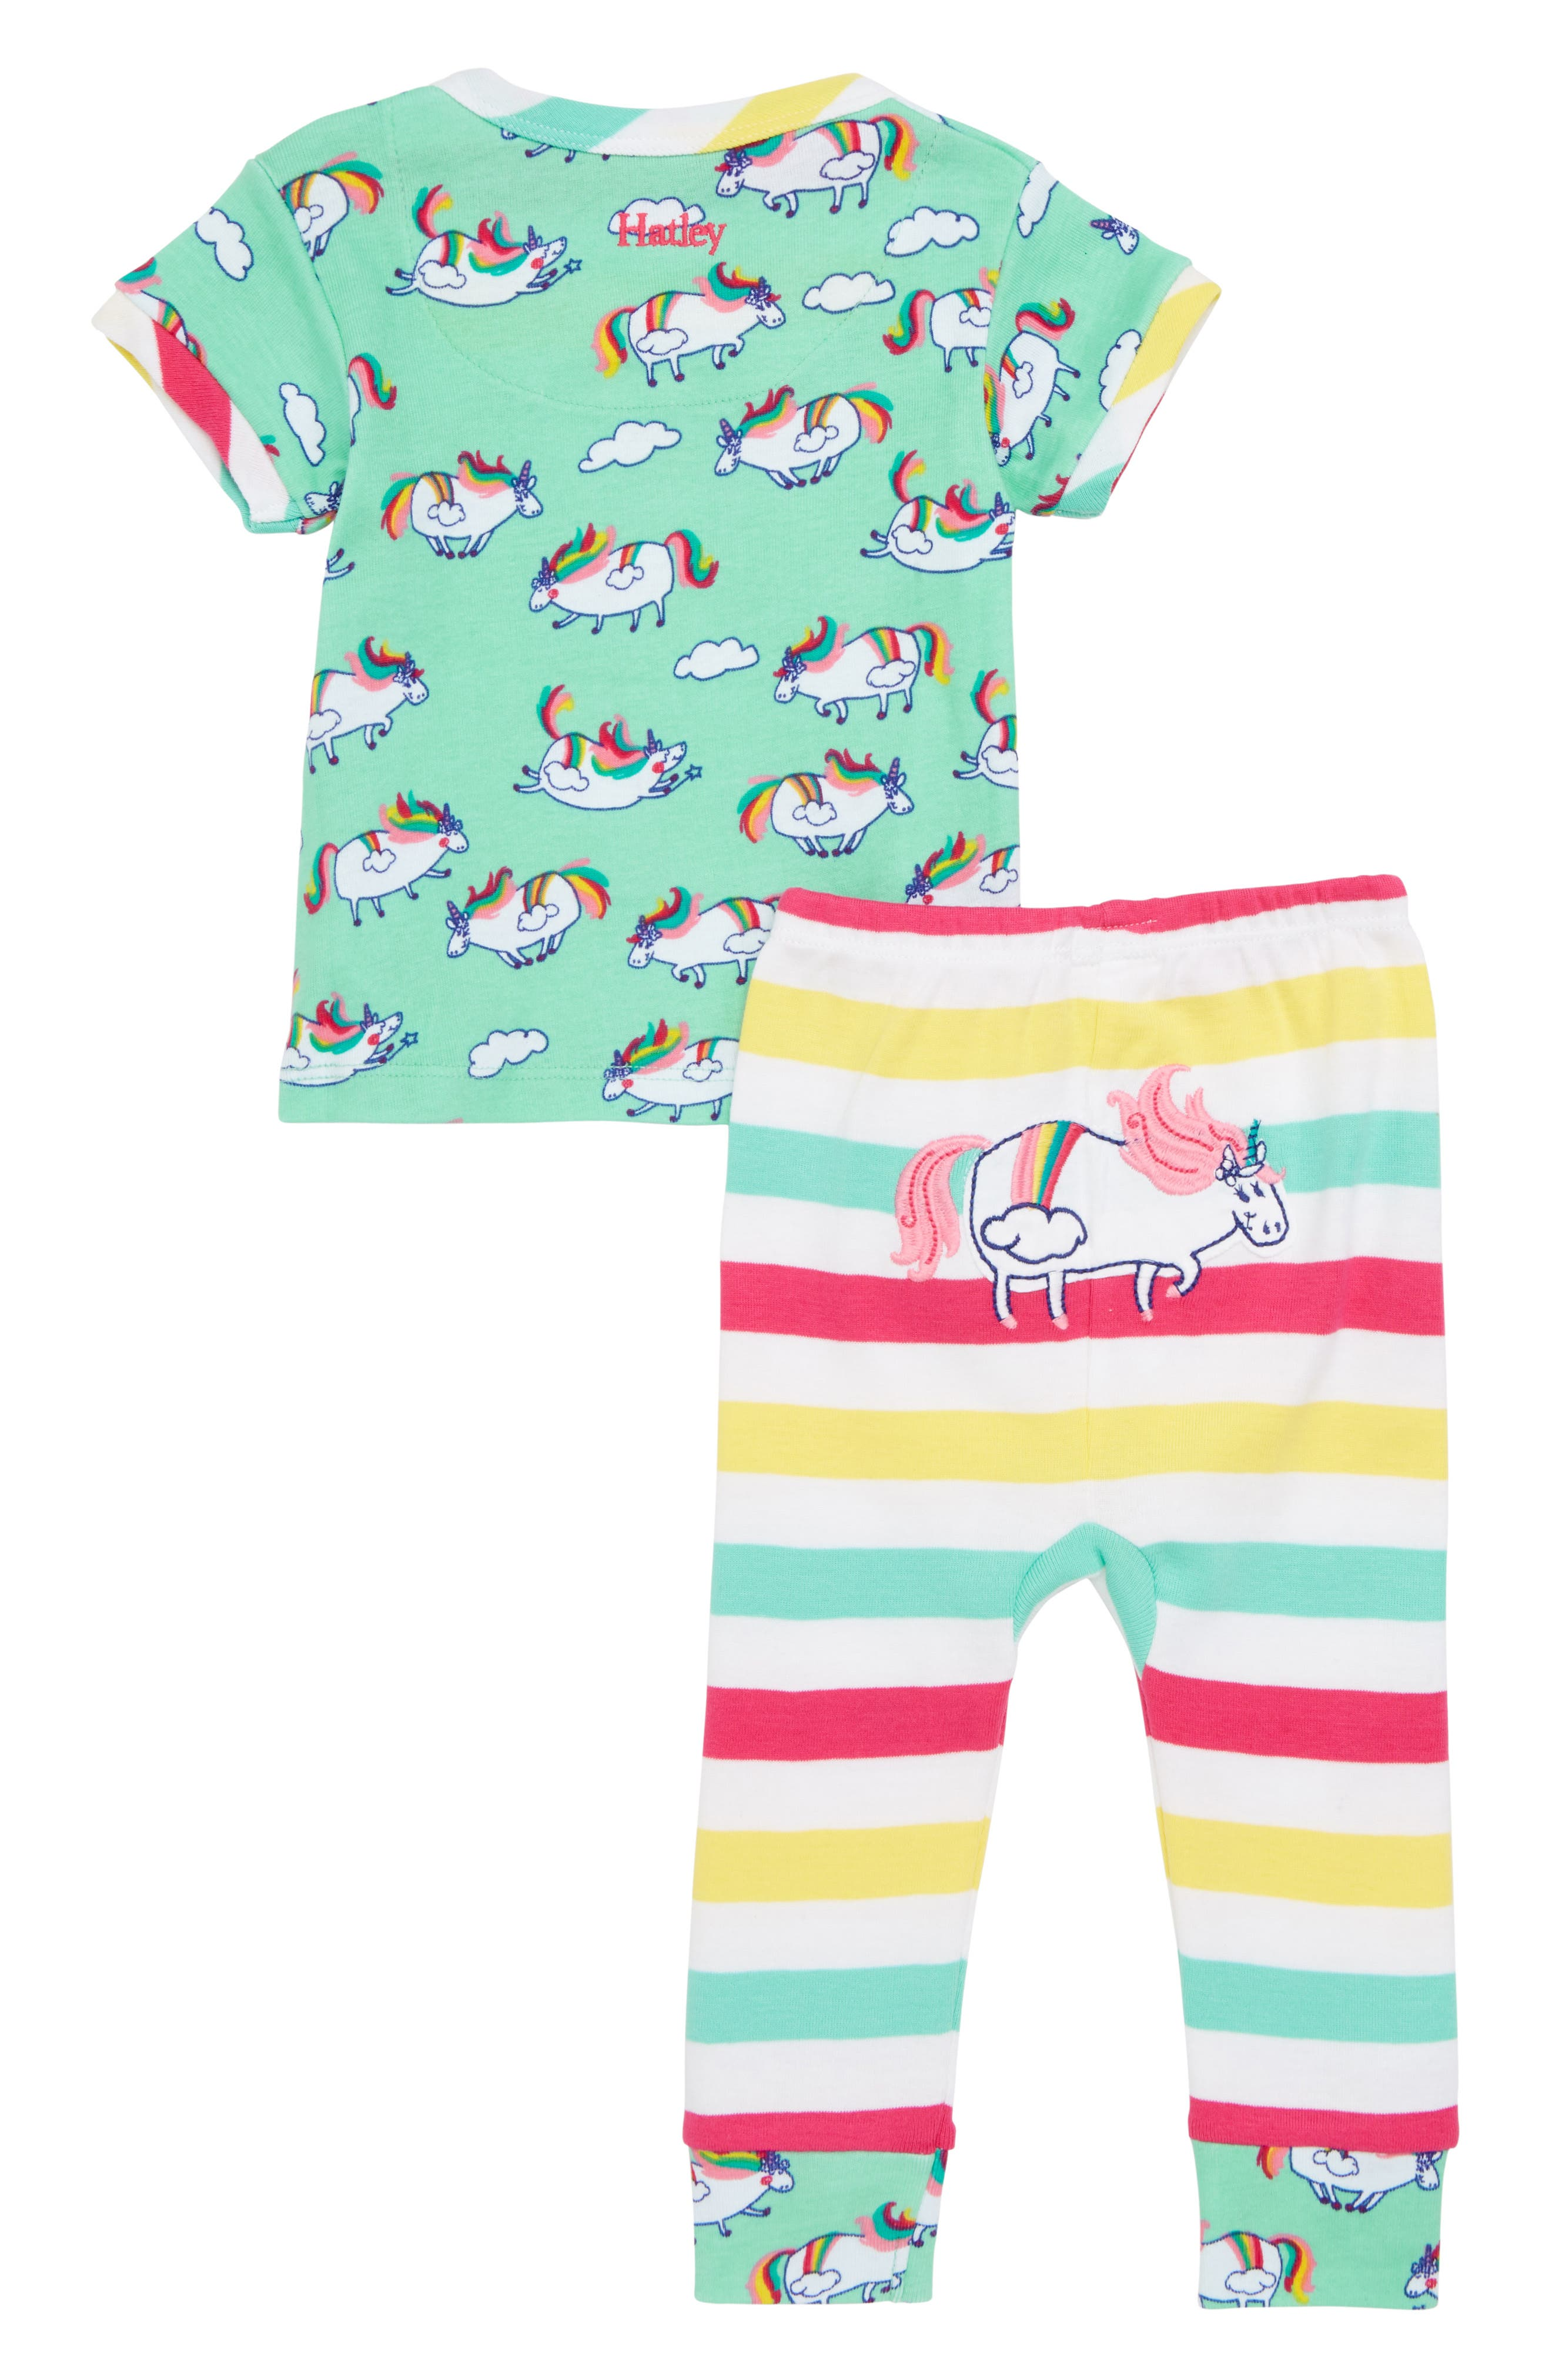 Unicorns & Stripes Fitted Two-Piece Pajamas Set,                             Alternate thumbnail 3, color,                             Roly Poly Unicorns